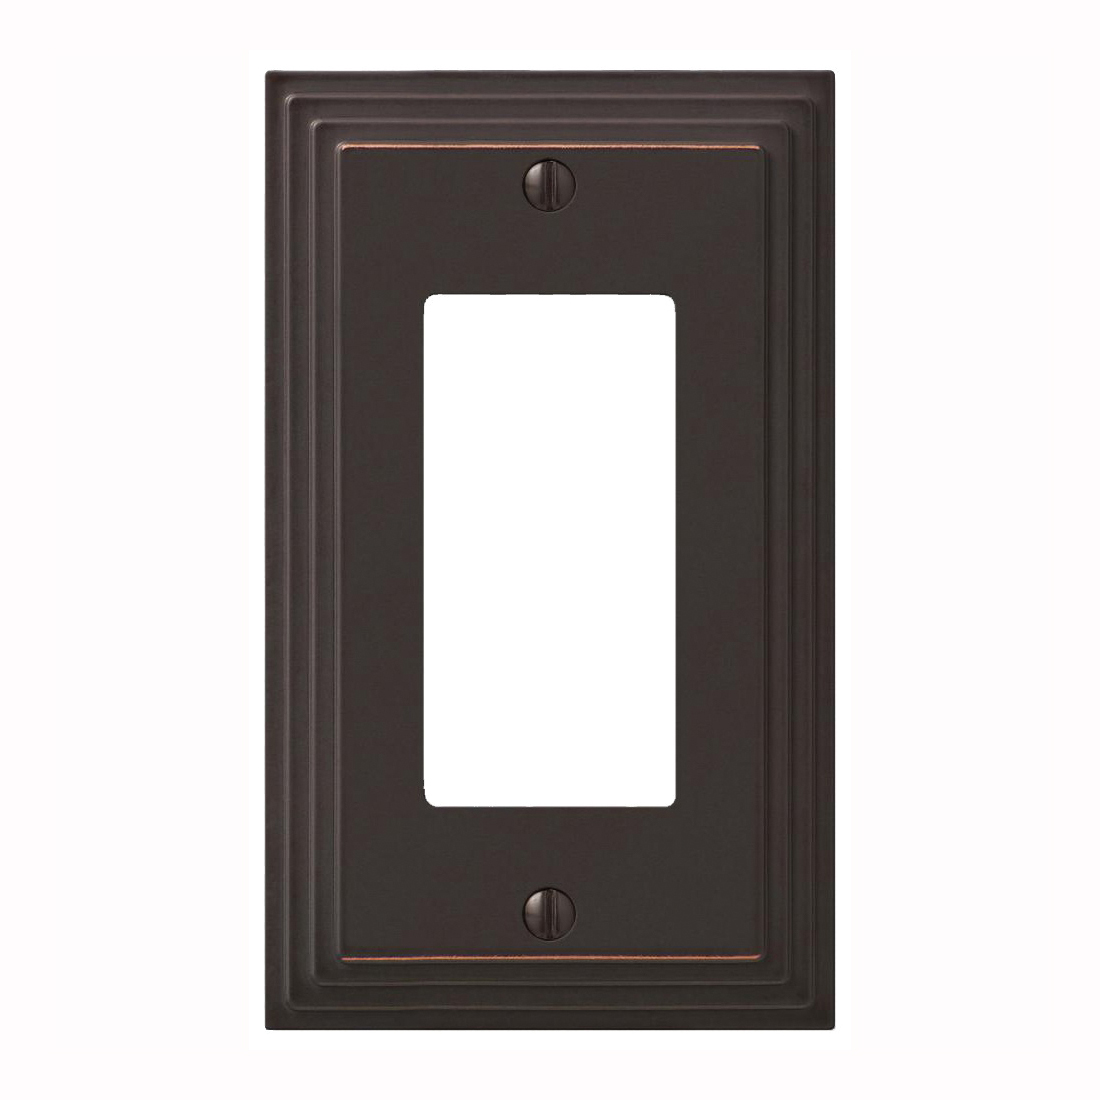 Picture of Amerelle 84RVB Wallplate, 4-15/16 in L, 2-15/16 in W, Aged Bronze